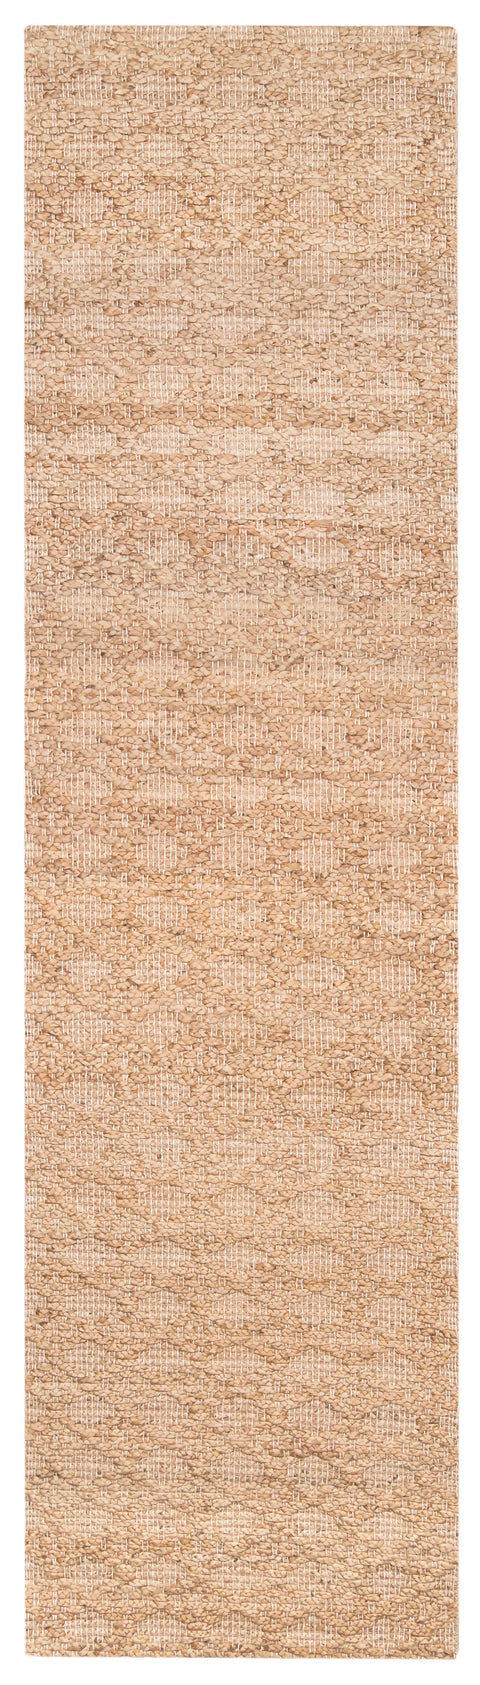 Callie Tribal Natural Diamond Jute Runner Rug